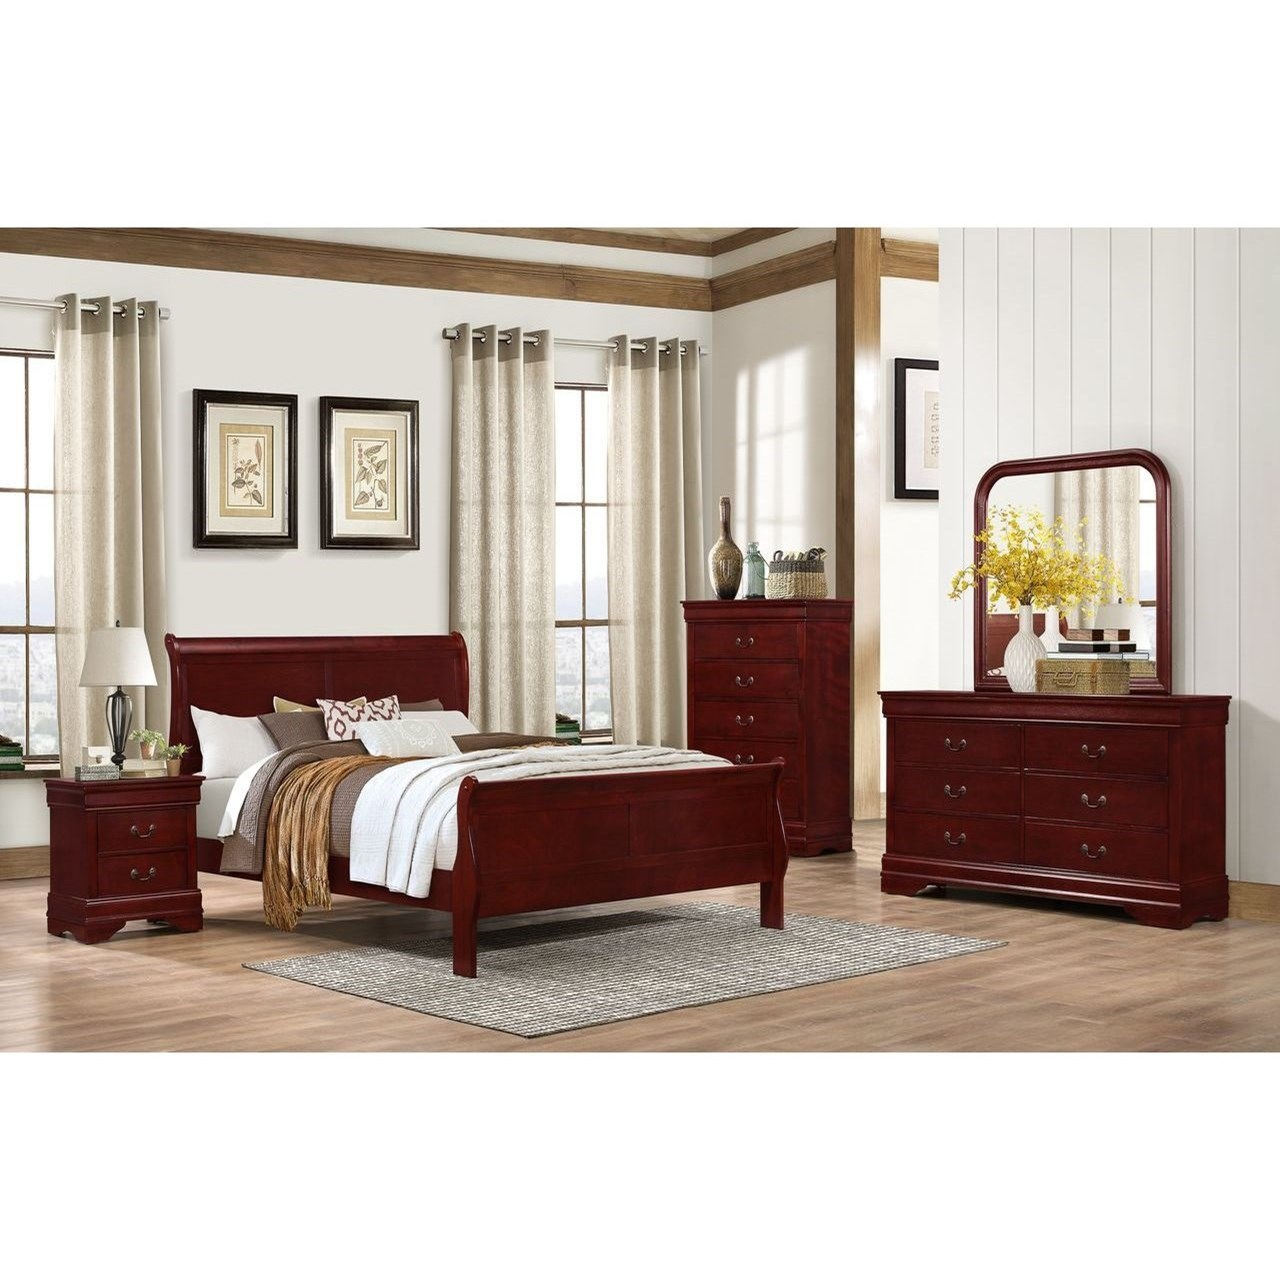 4937 Queen Bedroom Group by Lifestyle at Beck's Furniture